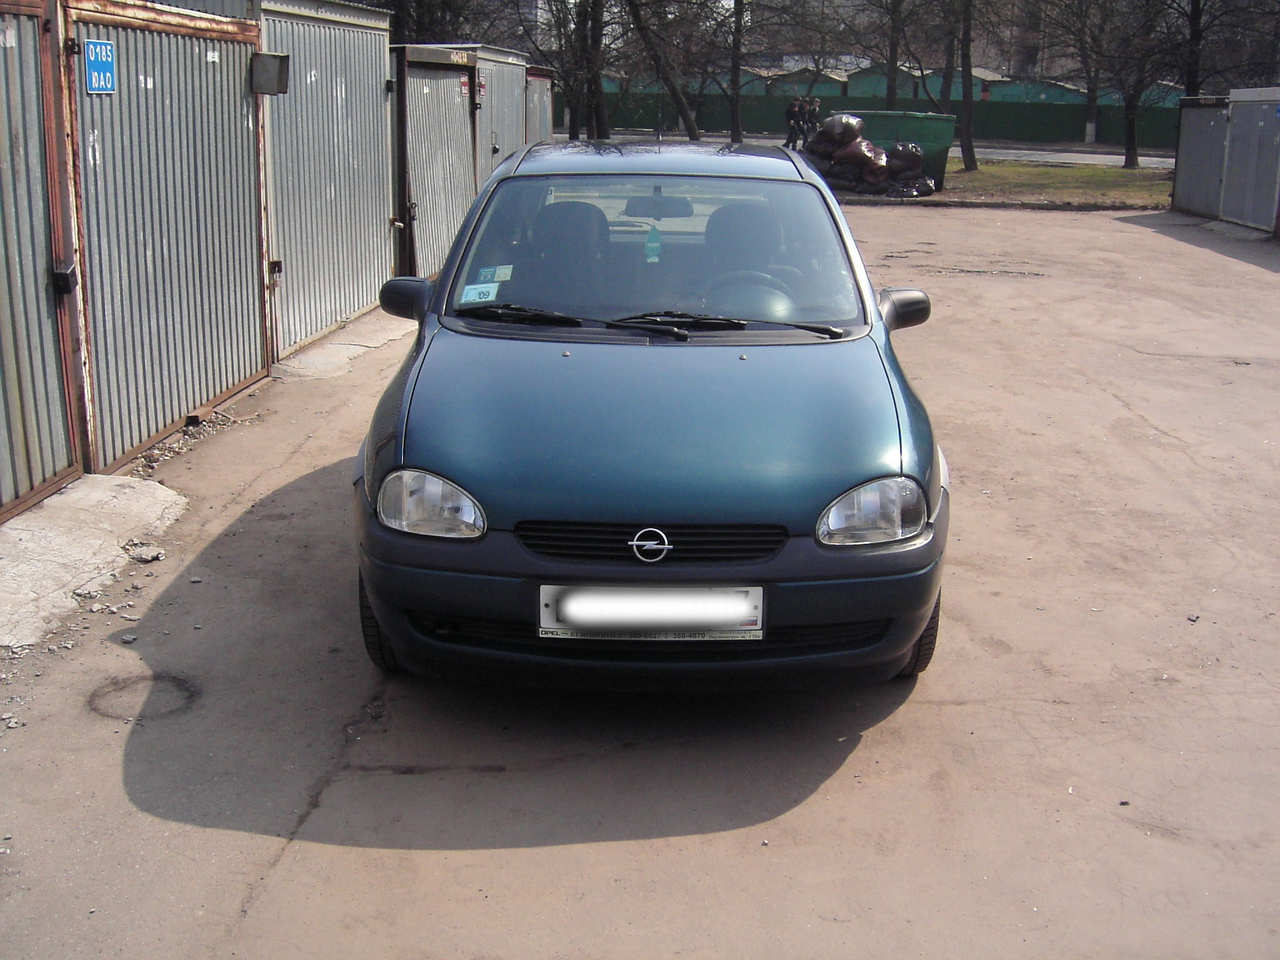 1998 opel corsa pictures gasoline ff manual for sale. Black Bedroom Furniture Sets. Home Design Ideas